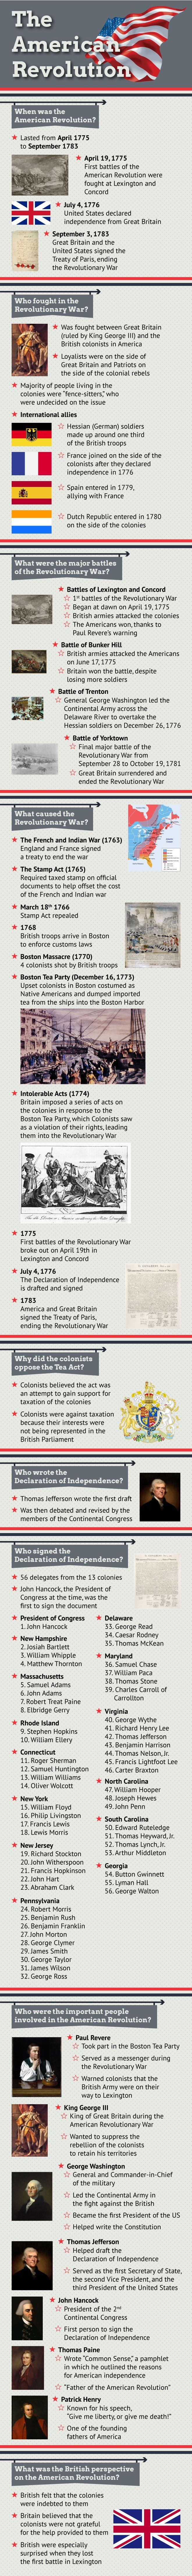 Infographic of The American Revolution Facts